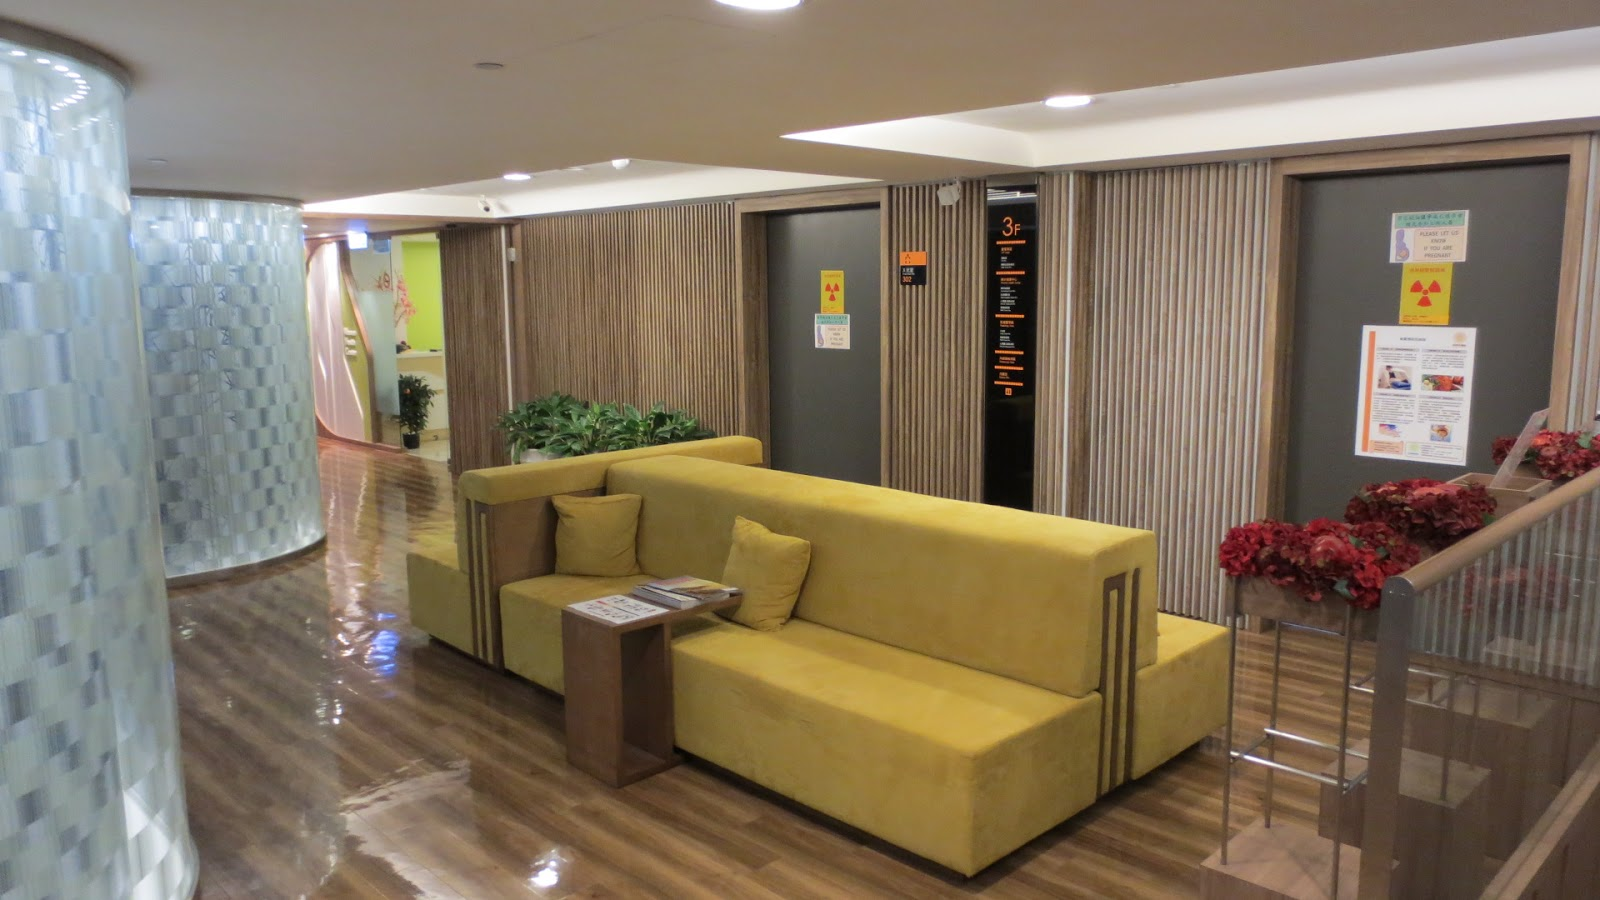 Cancer Hospital Waiting Room Areas Joy Studio Design